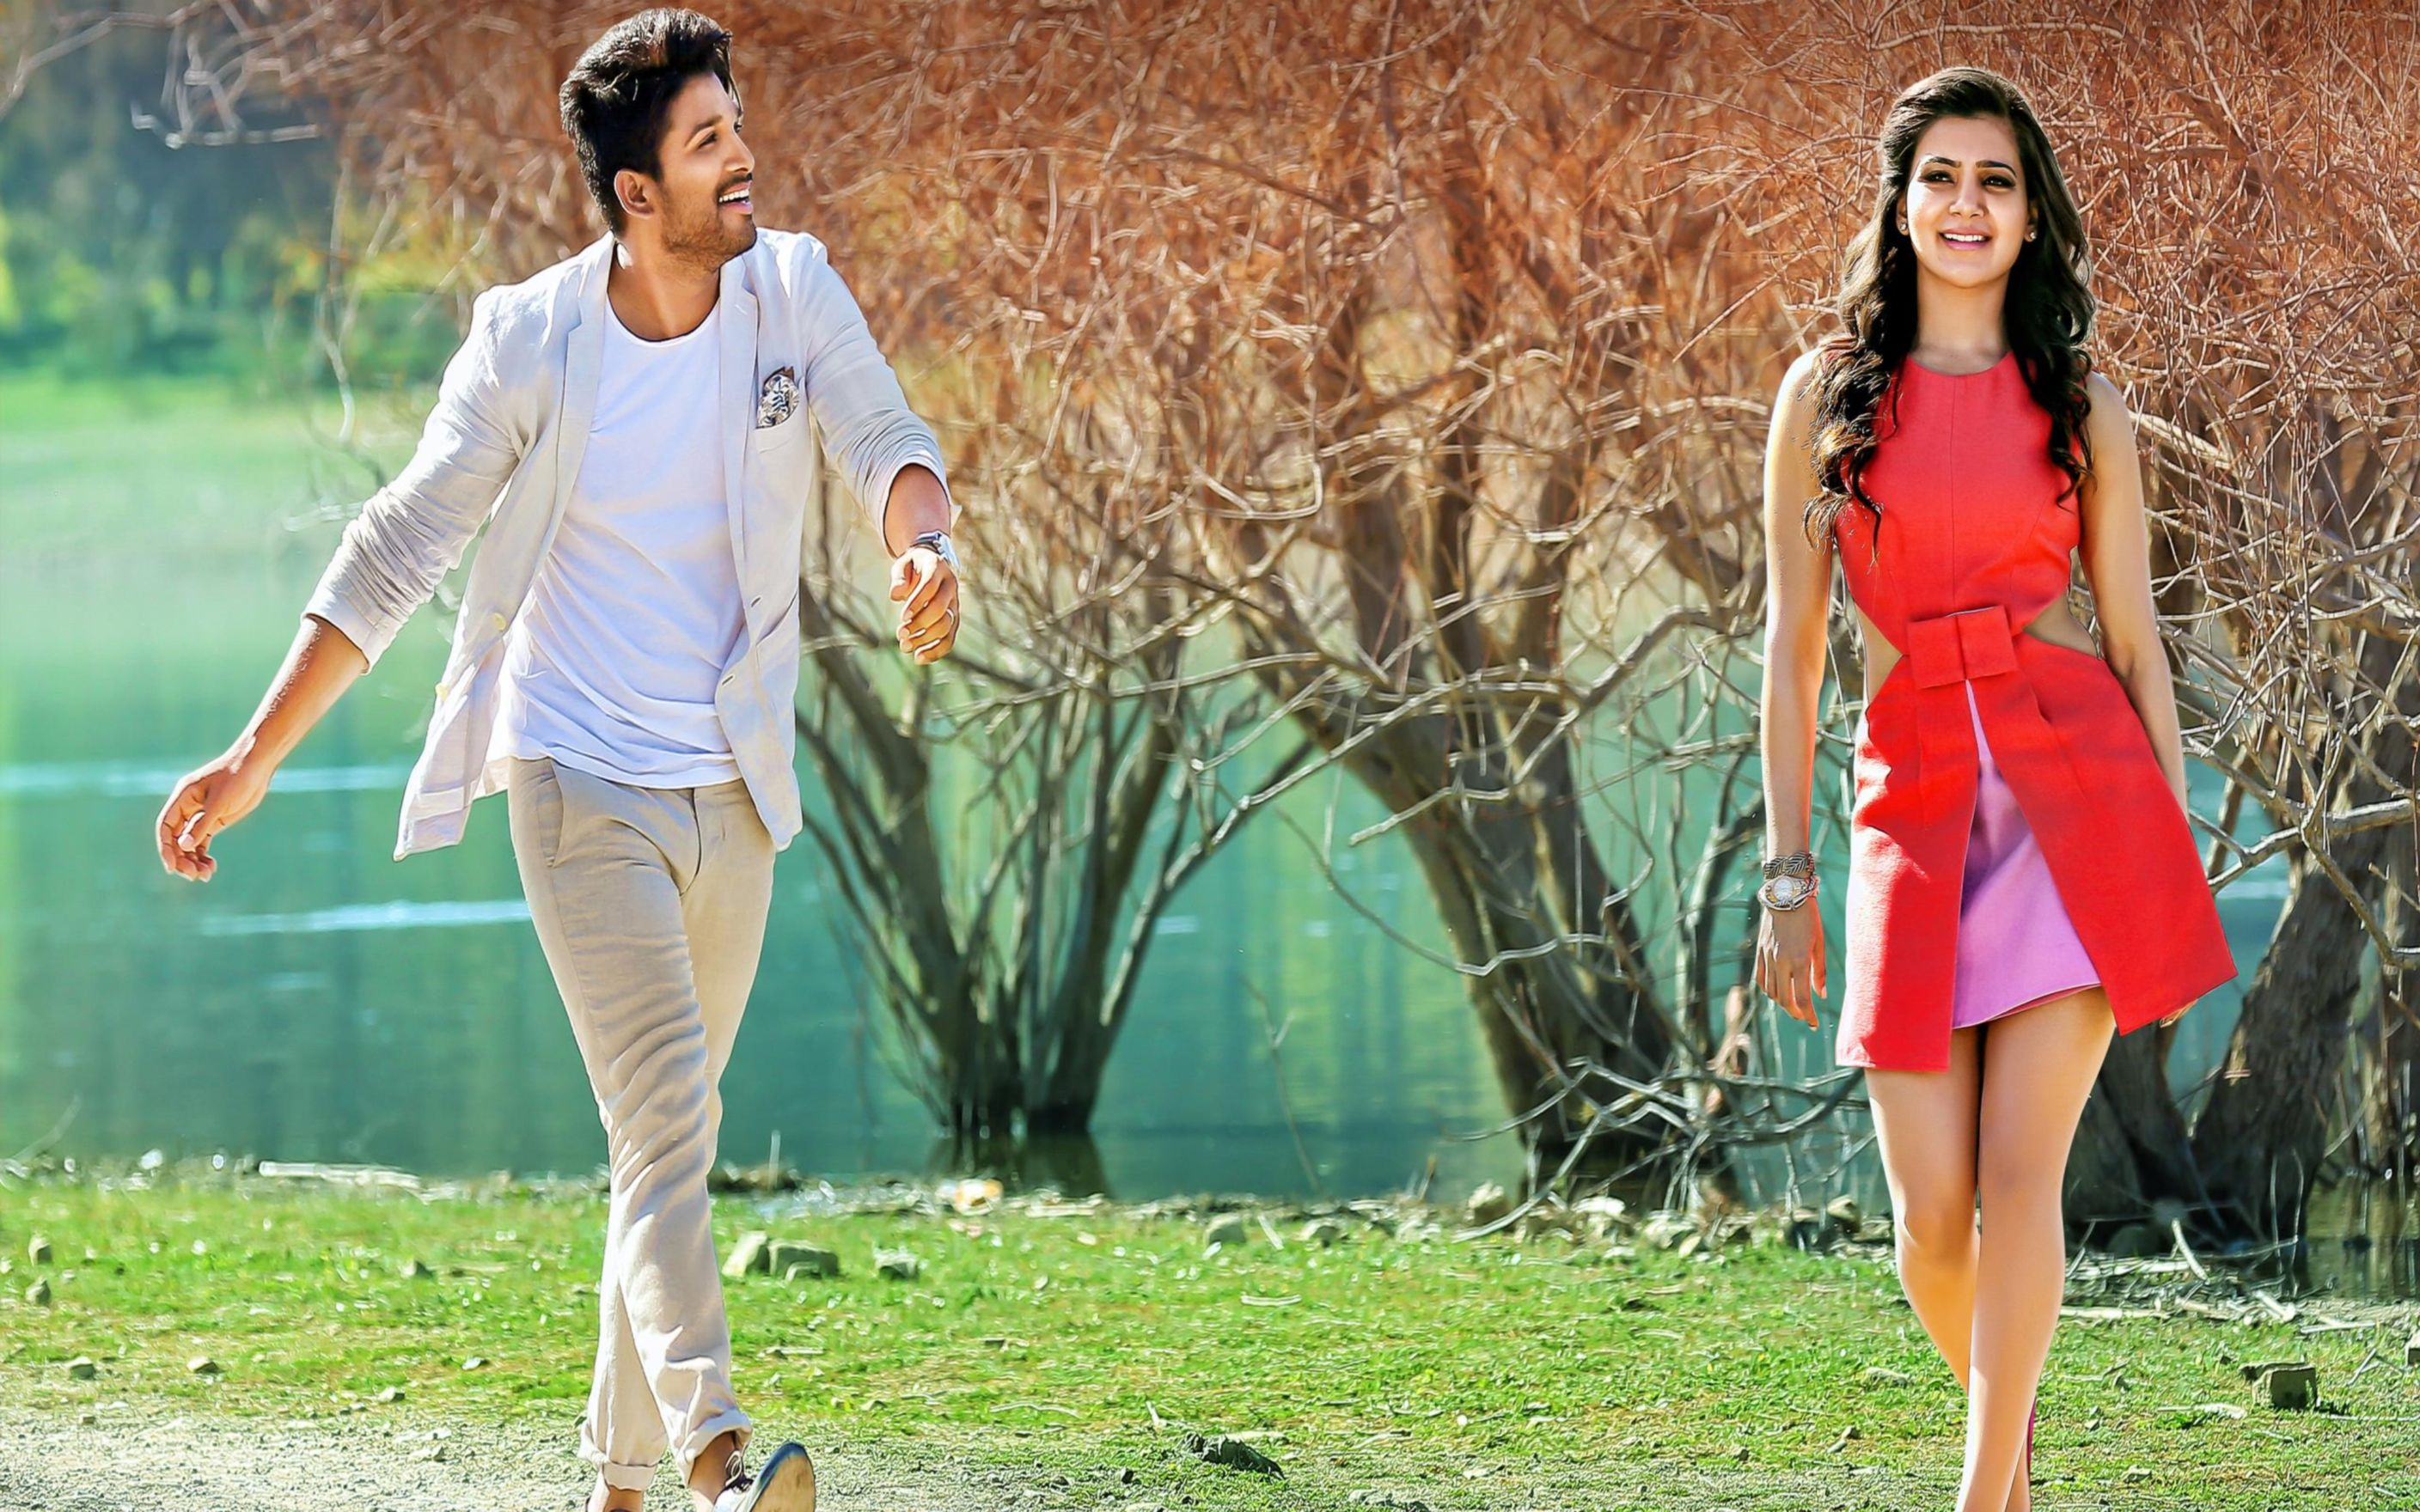 Download free HD Satyamurthy Allu Arjun Samantha Wallpaper, image